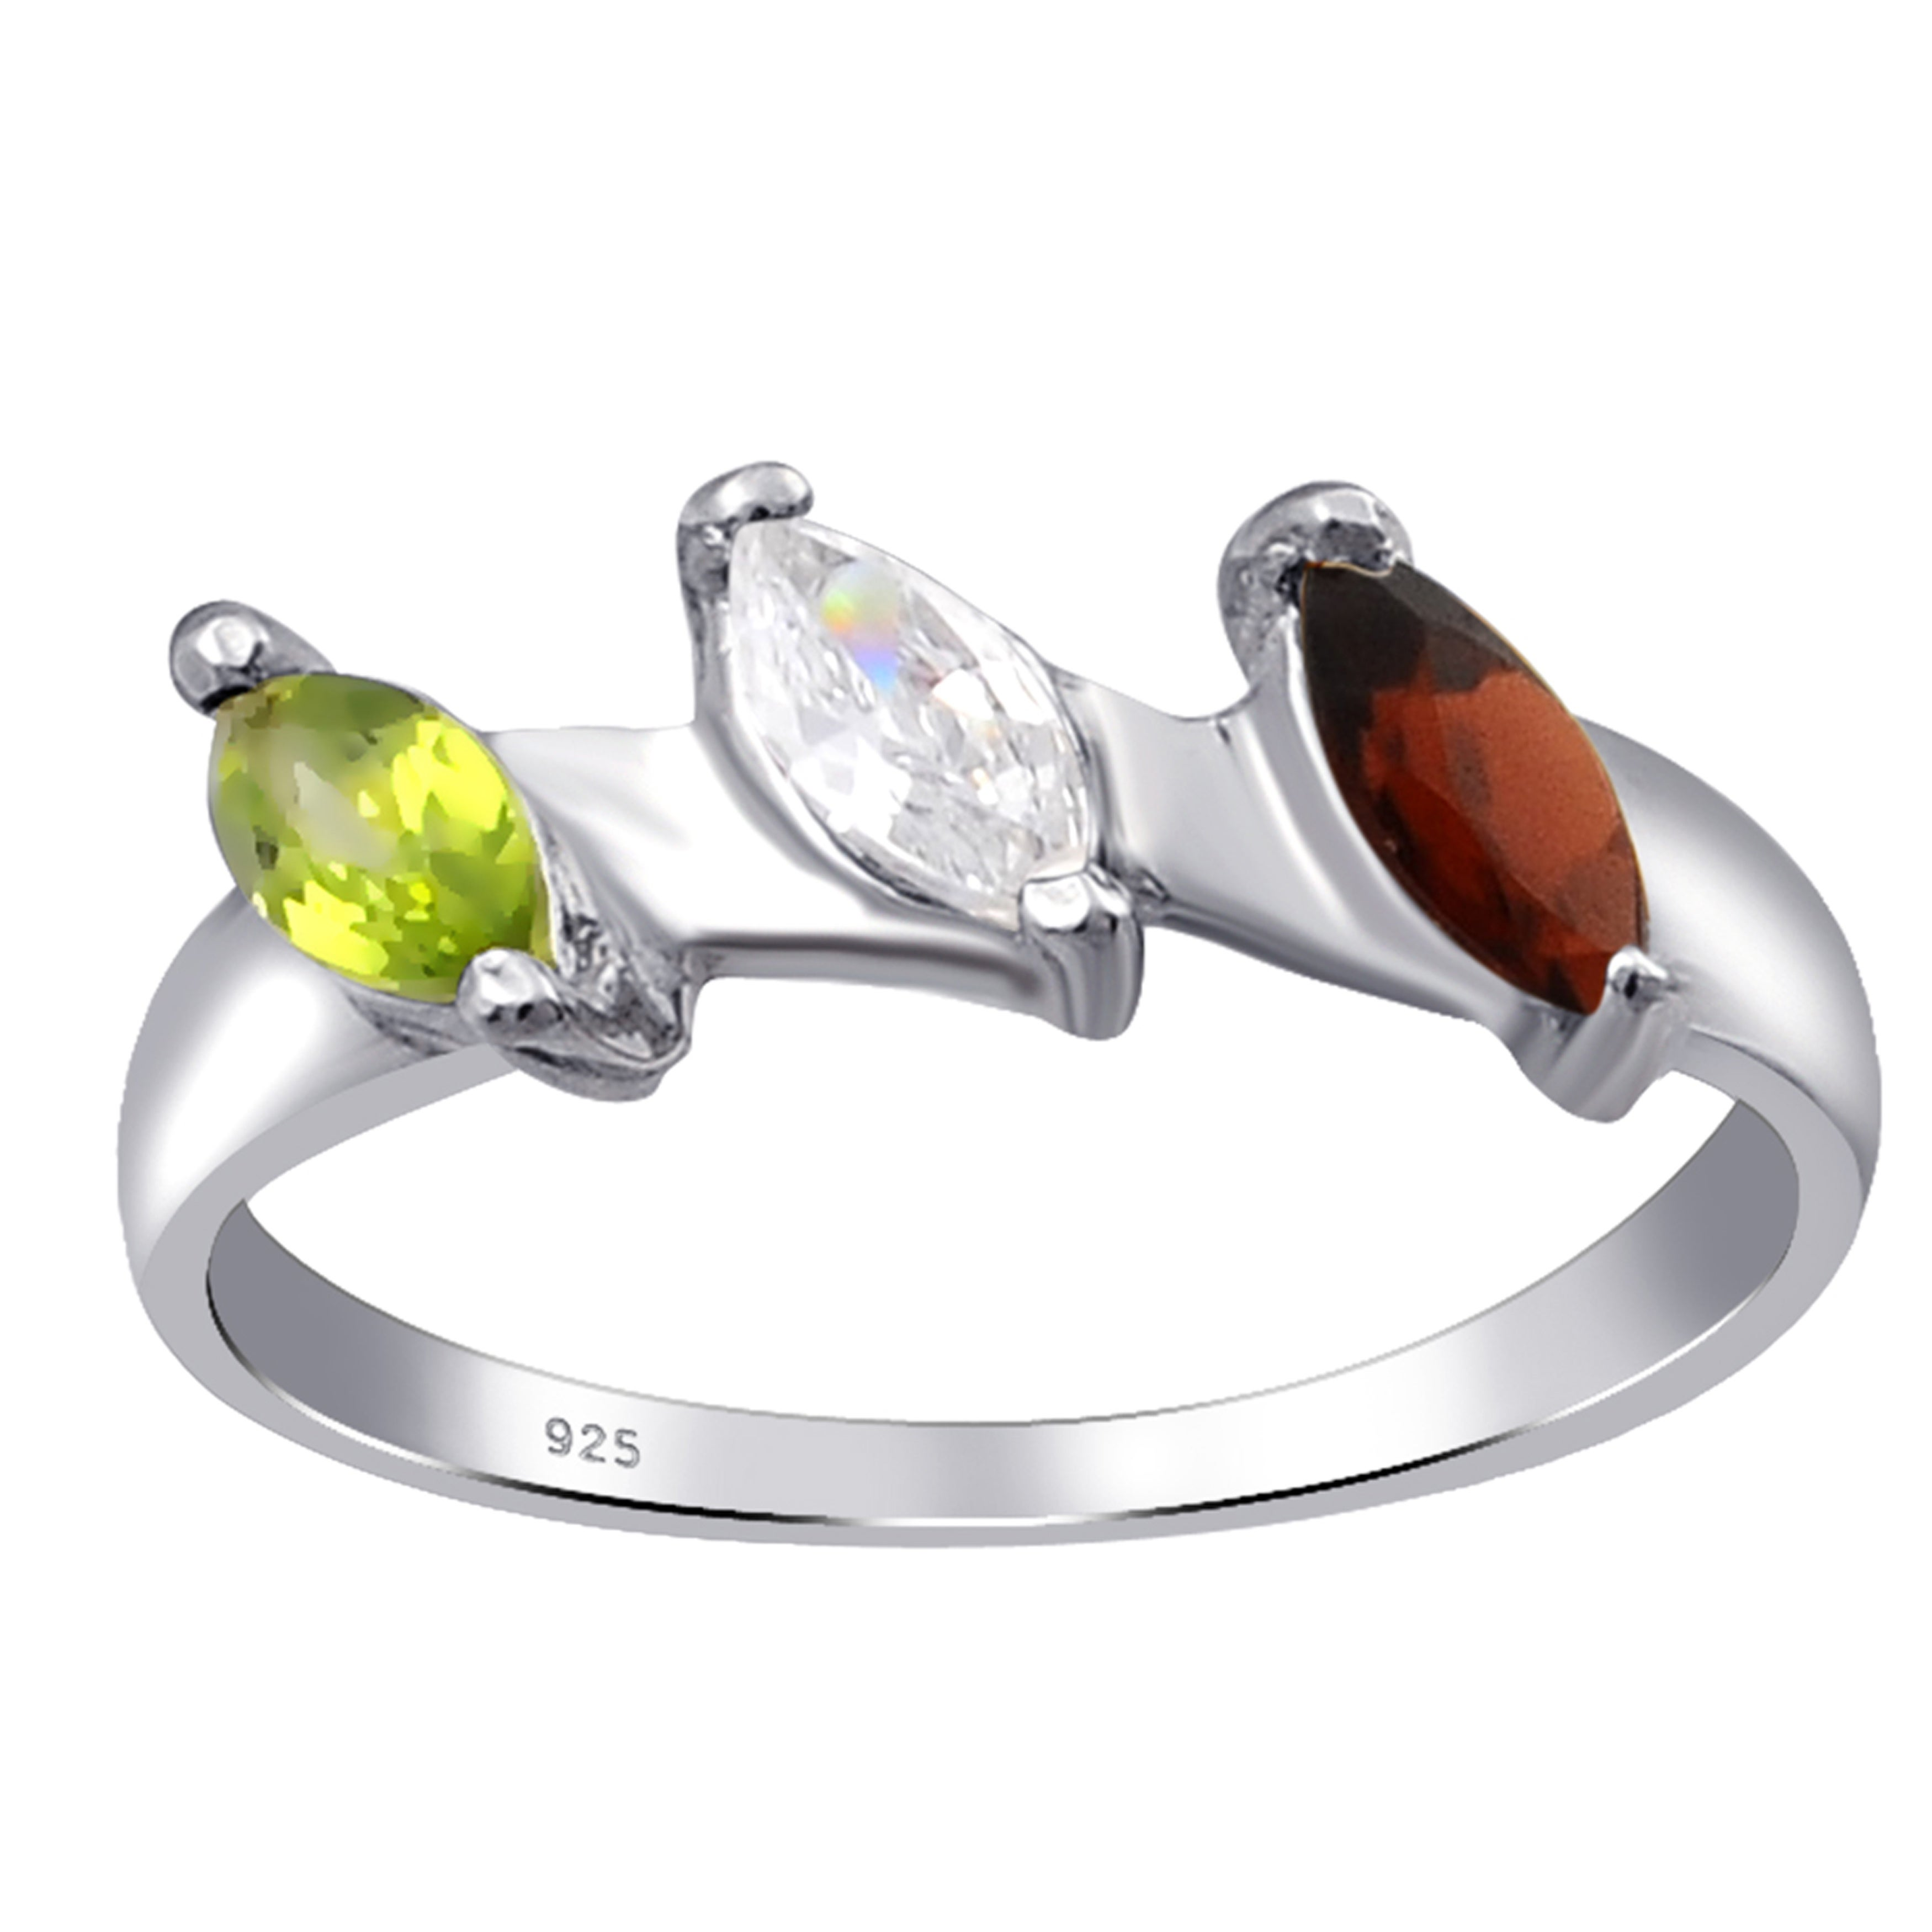 Natural Peridot with Cubic Zirconia Stones Ring 925 Sterling Silver